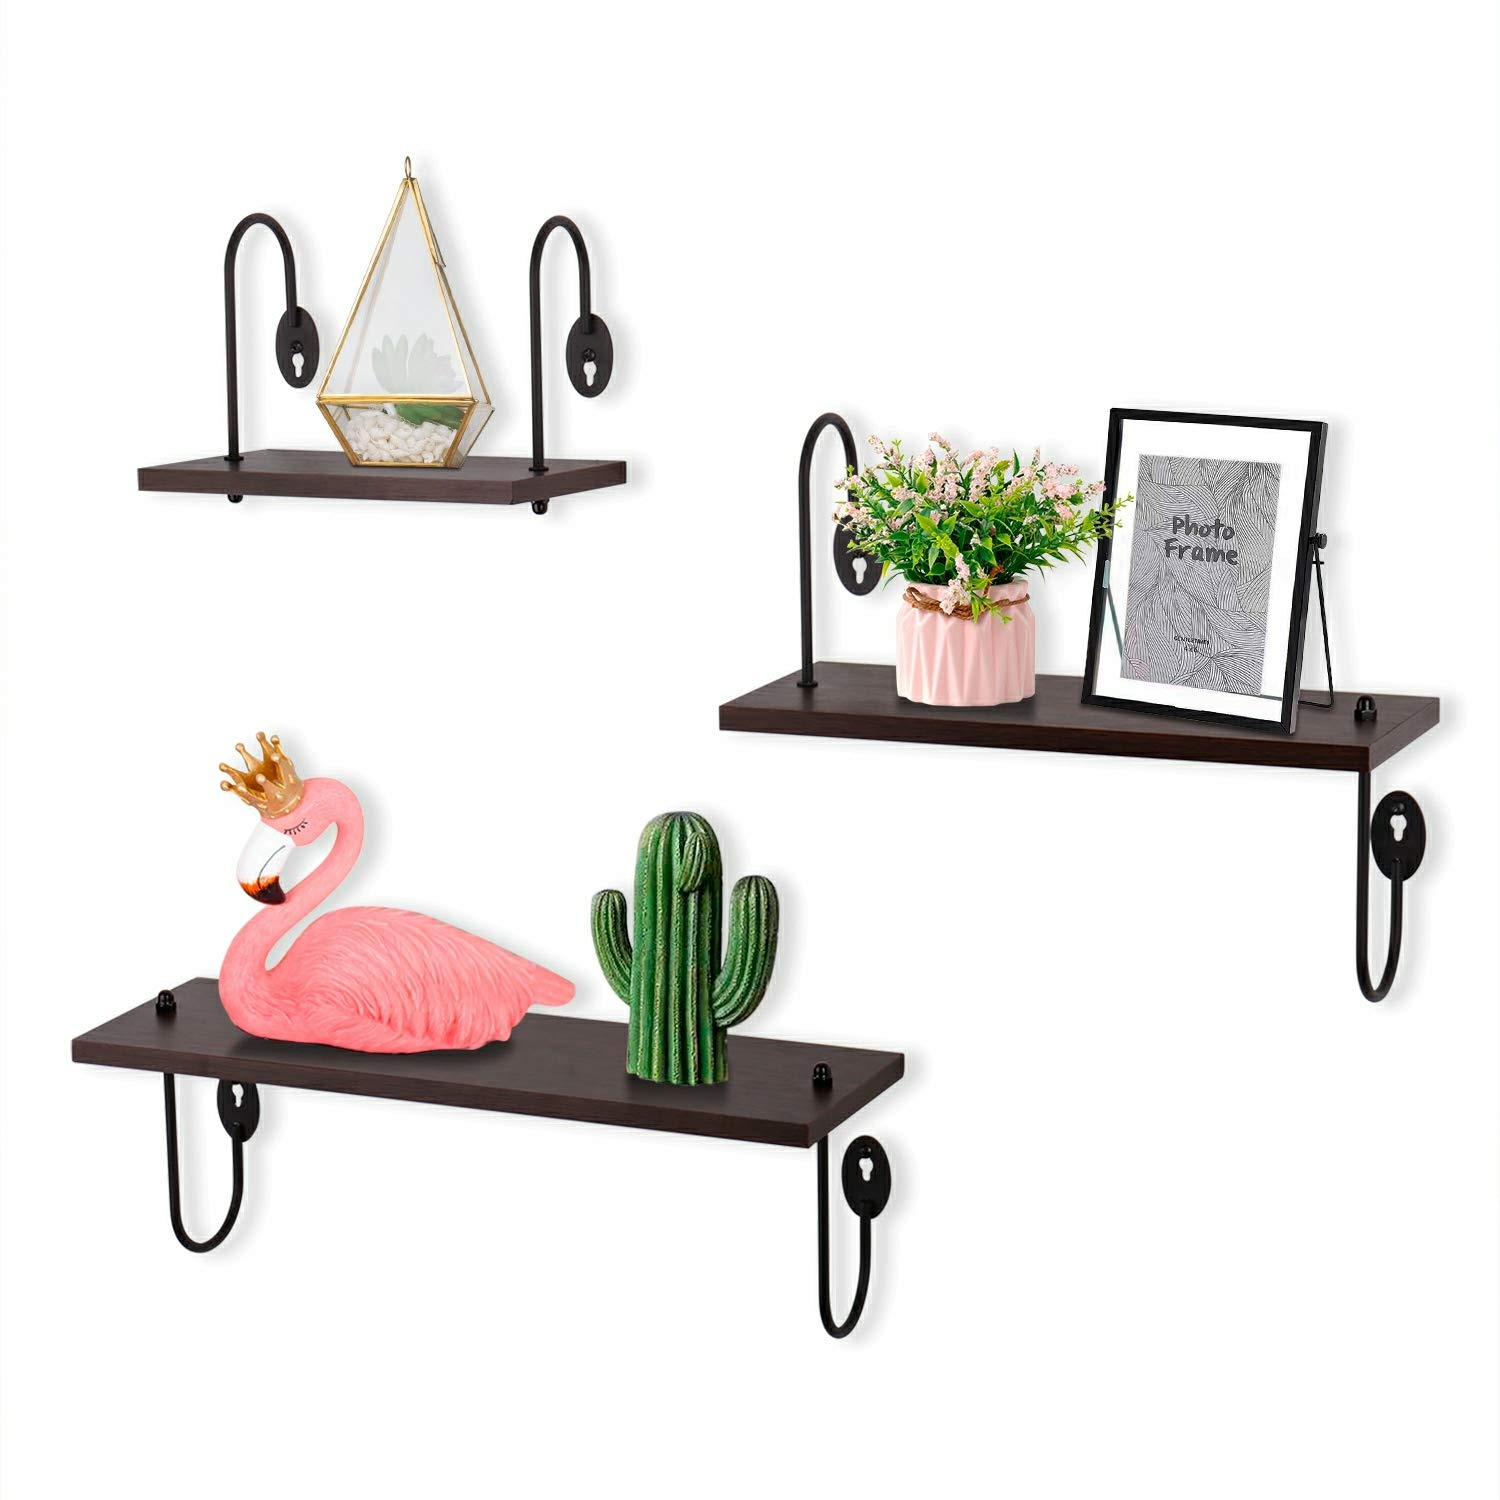 kis floating shelves wall mounted set rustic large wood with storage for bedroom bathroom living room kitchen office walnut brown industrial open shelf ladder bookcase ikea unit